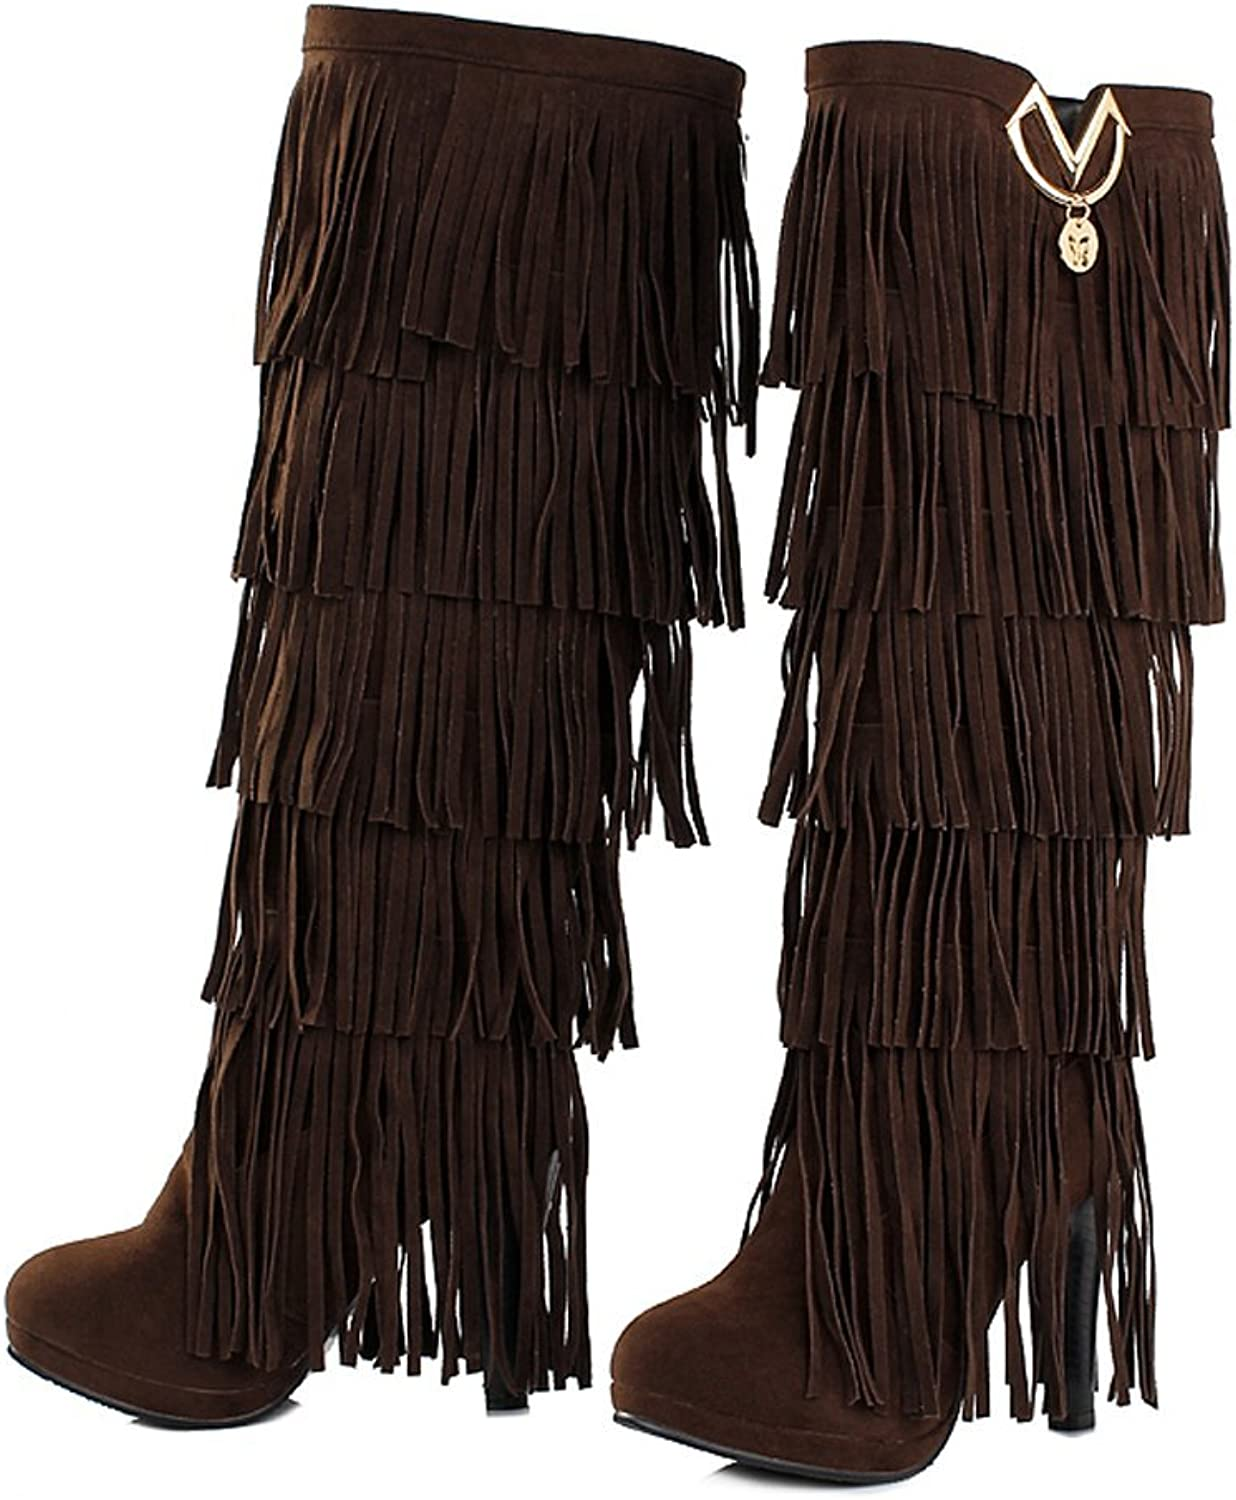 Cindy's store Womens Fringe Tassel Stiletto Boots Faux Suede Moccasin High Heel Western Cowboy Knee High Boot